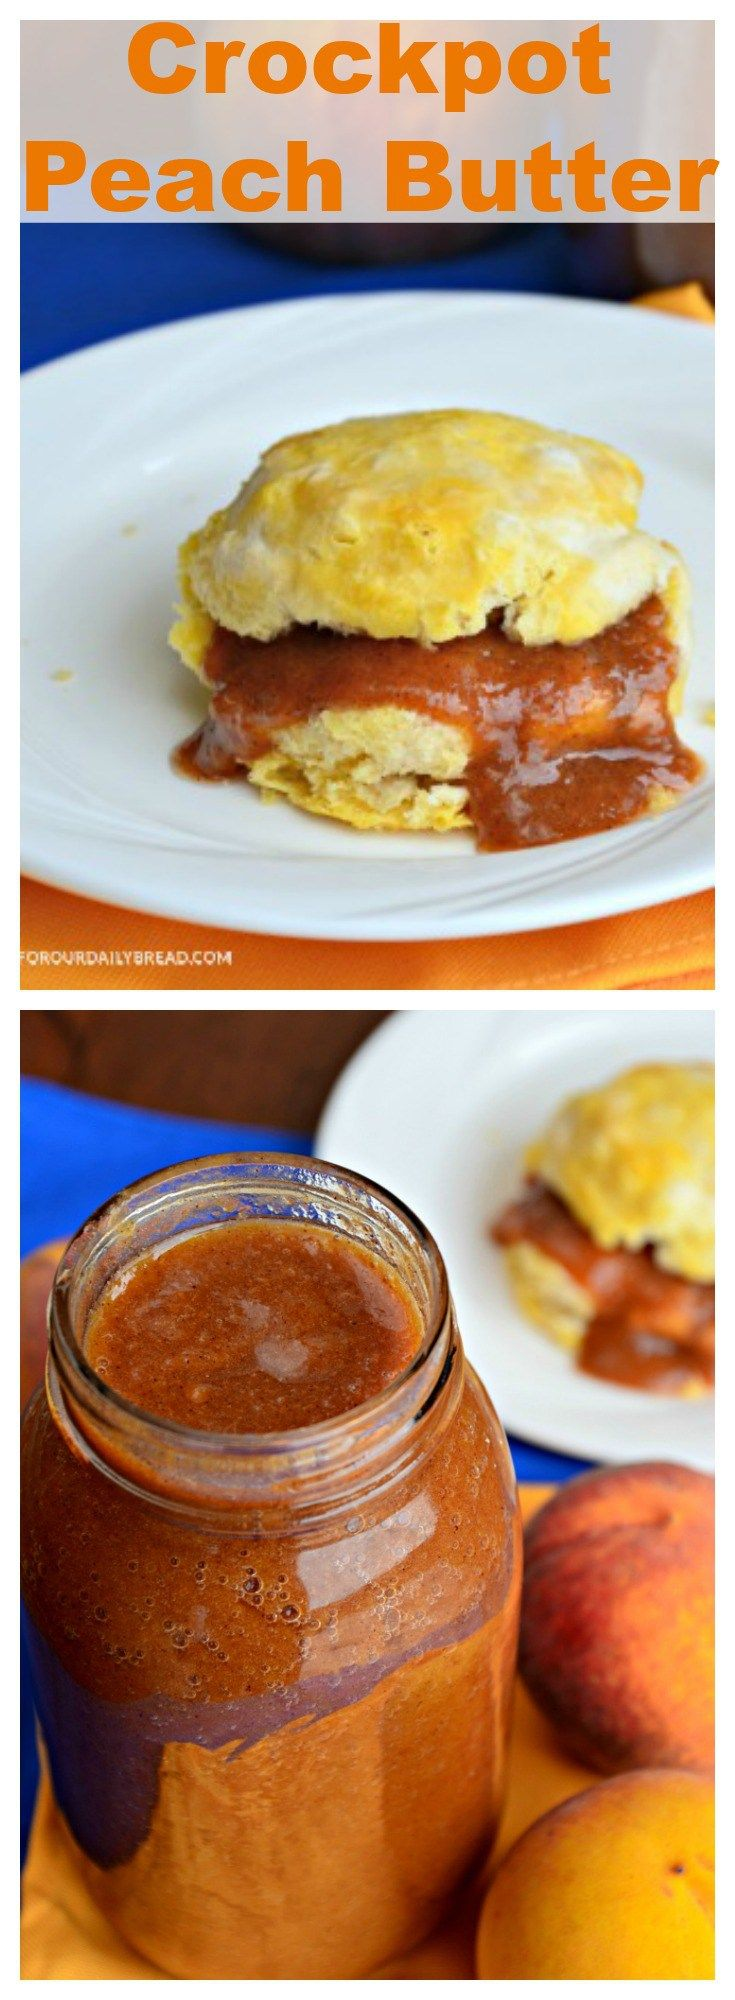 Crockpot Peach Butter is a great way to use your fresh peaches. It is amazing…